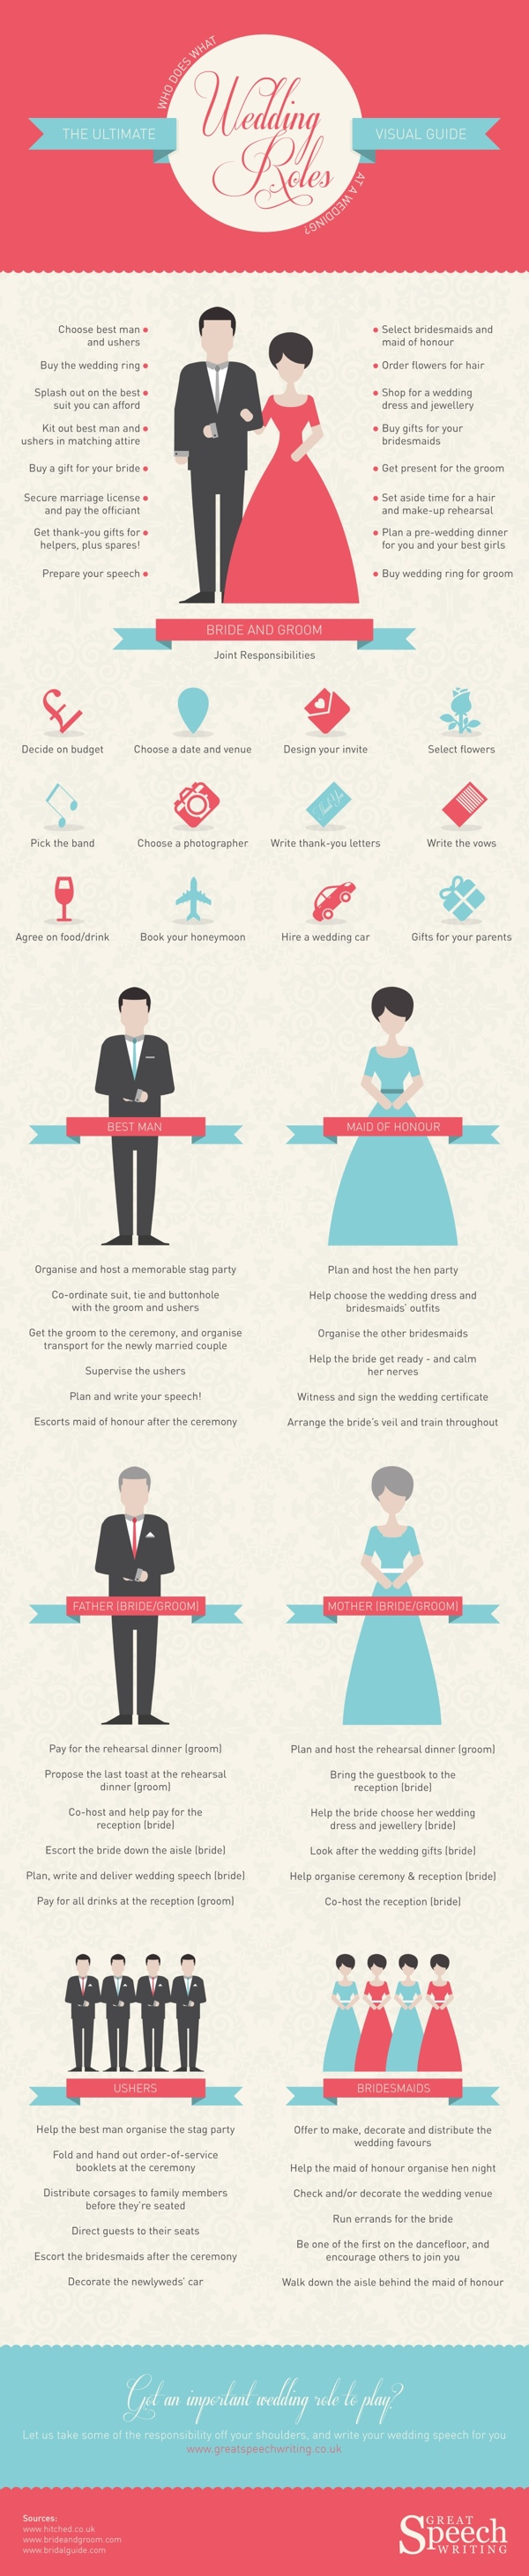 An Infographic Guide to Wedding Roles